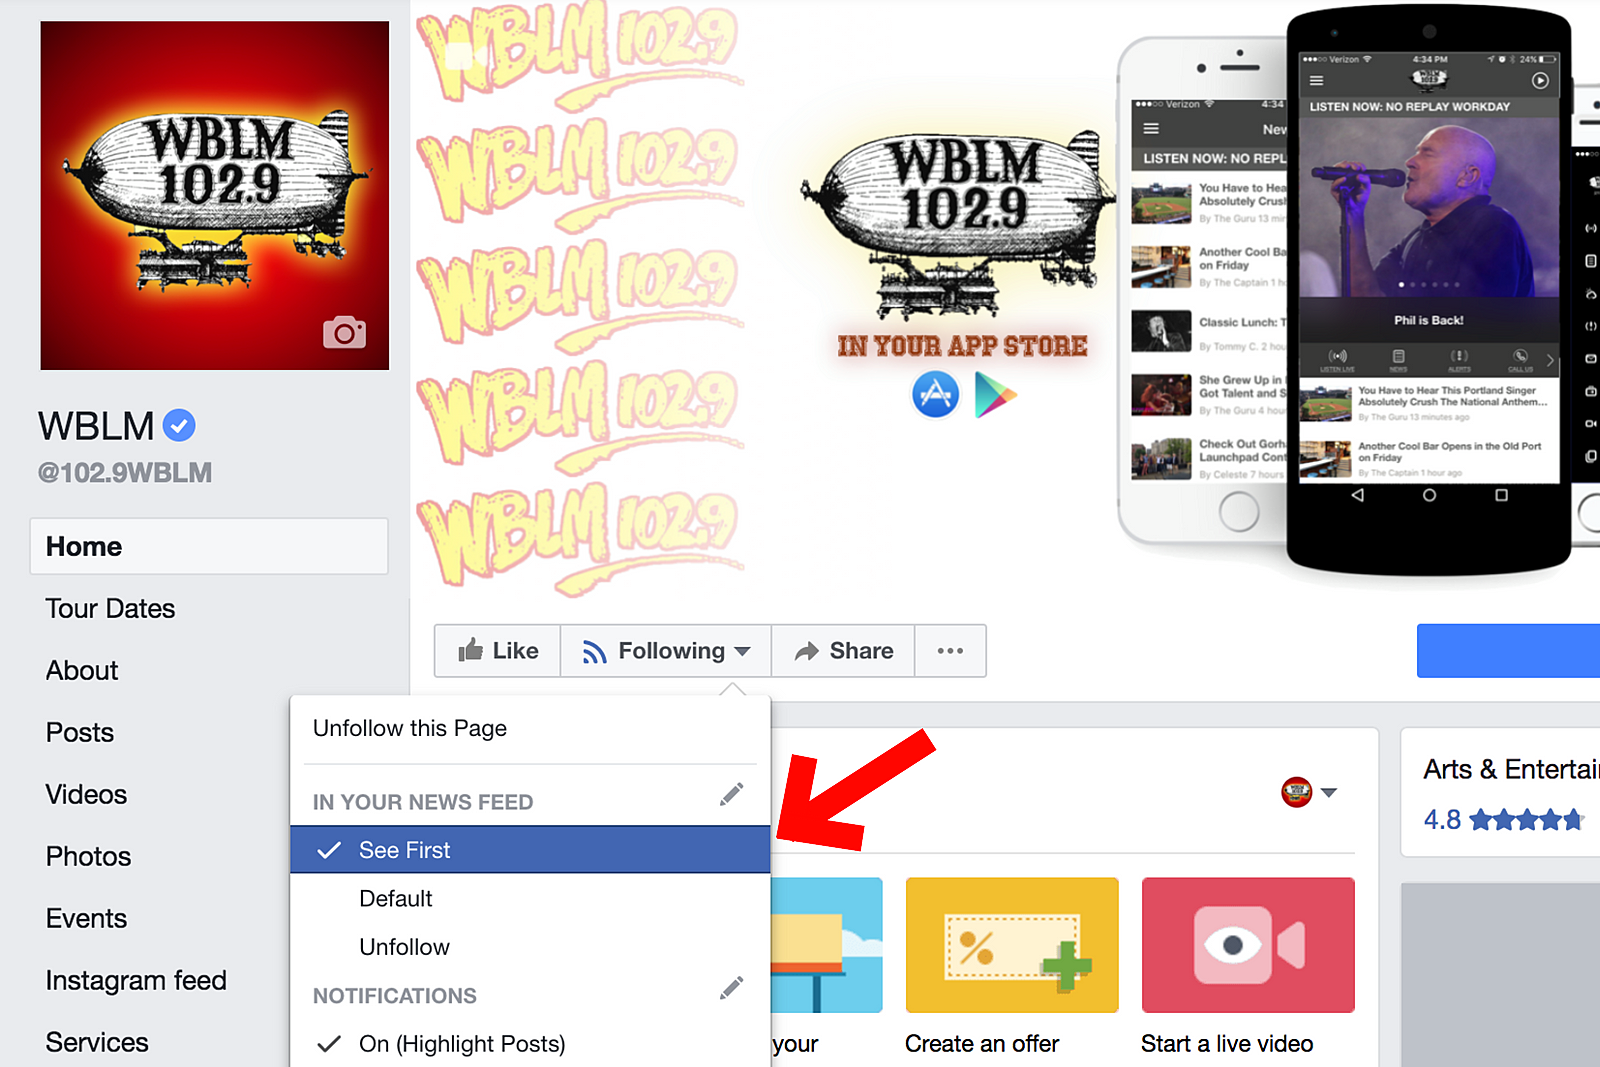 Seeing Less Facebook Posts from WBLM? Here's Why, How to Fix It